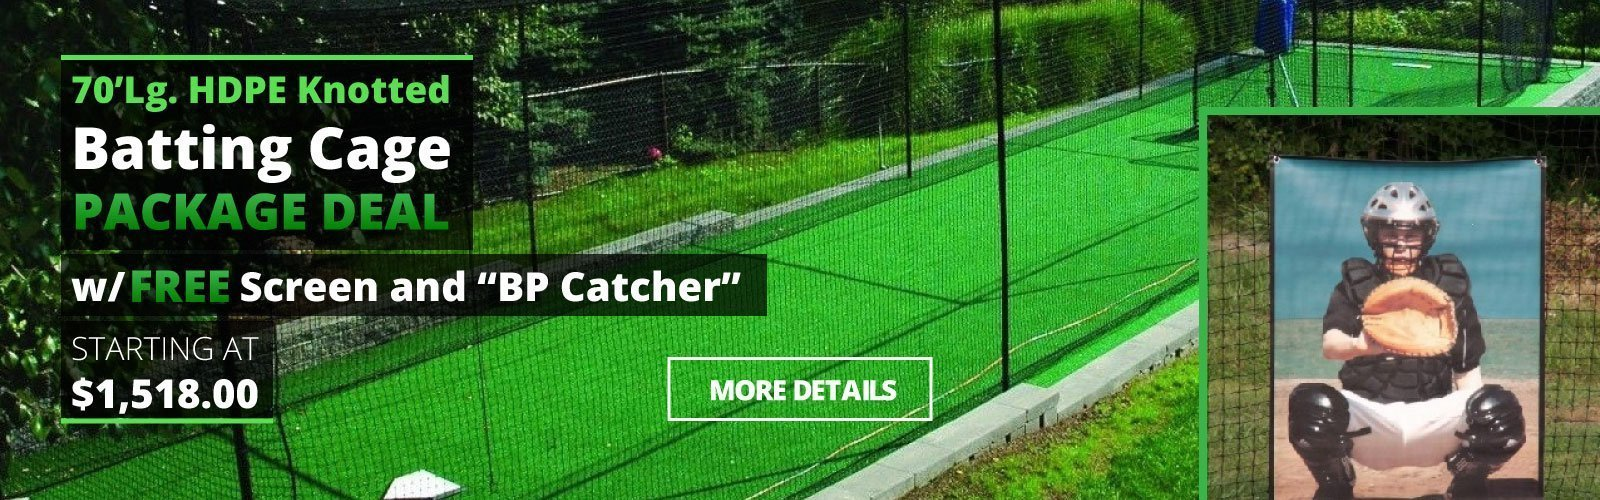 70-Lg-HDPE-Knotted-Batting-Cage-Package-Deal